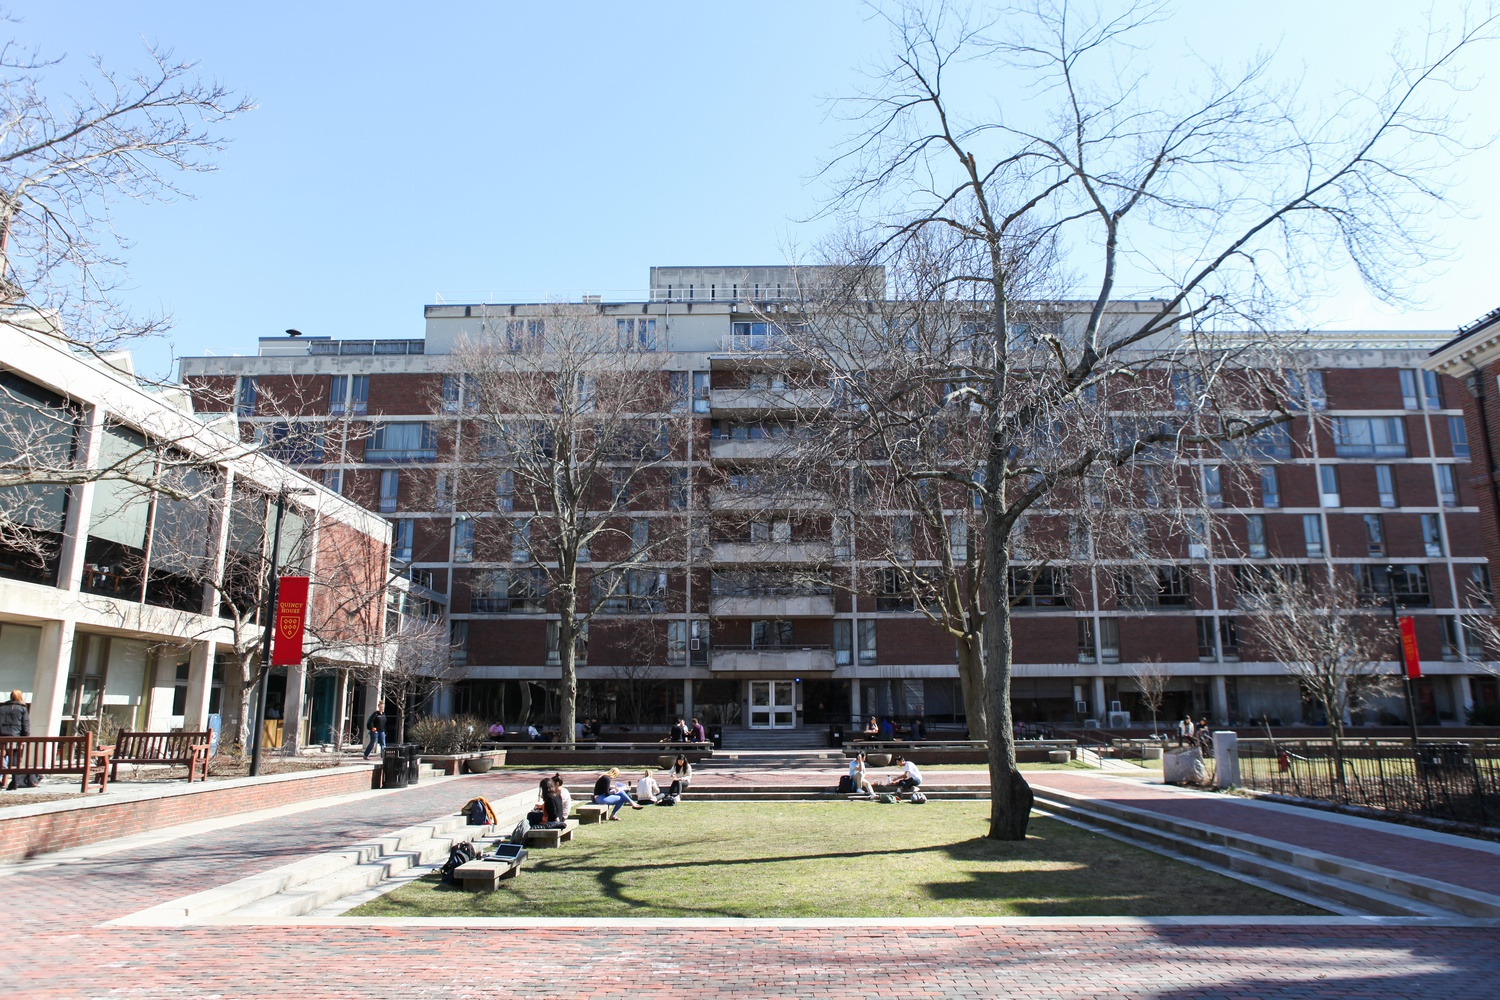 Quincy House is one of the remaining undergraduate houses open on campus after the majority of students left because of the coronavirus pandemic.